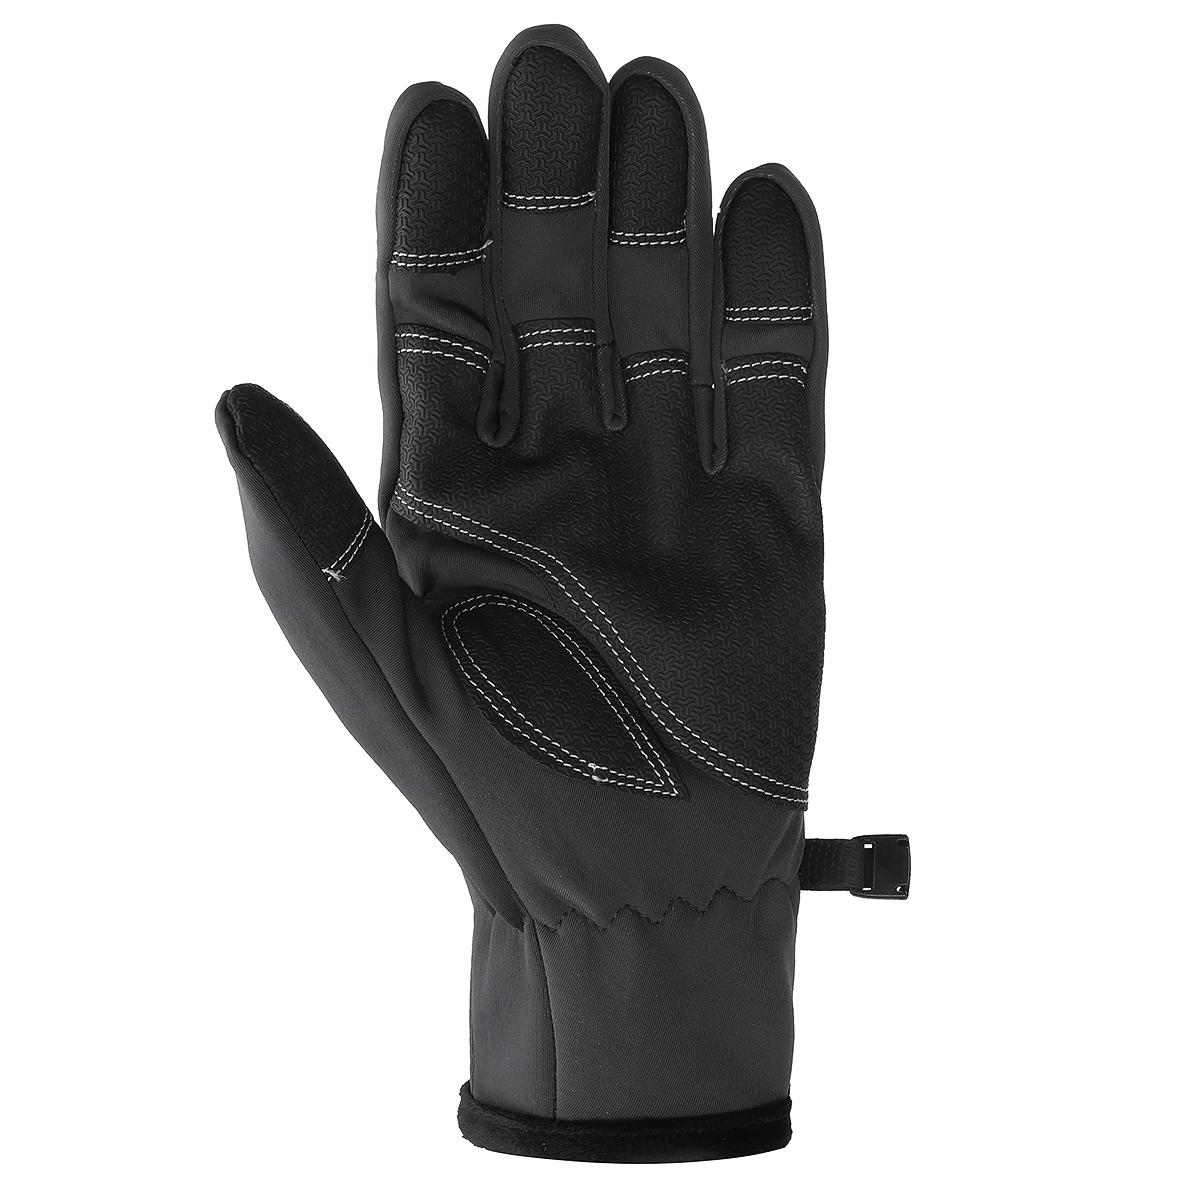 Winter Warm Touch Screen Glove Anti-slip Windproof Waterproof Gloves For Outdoor Skiing Climbing Motorcycle